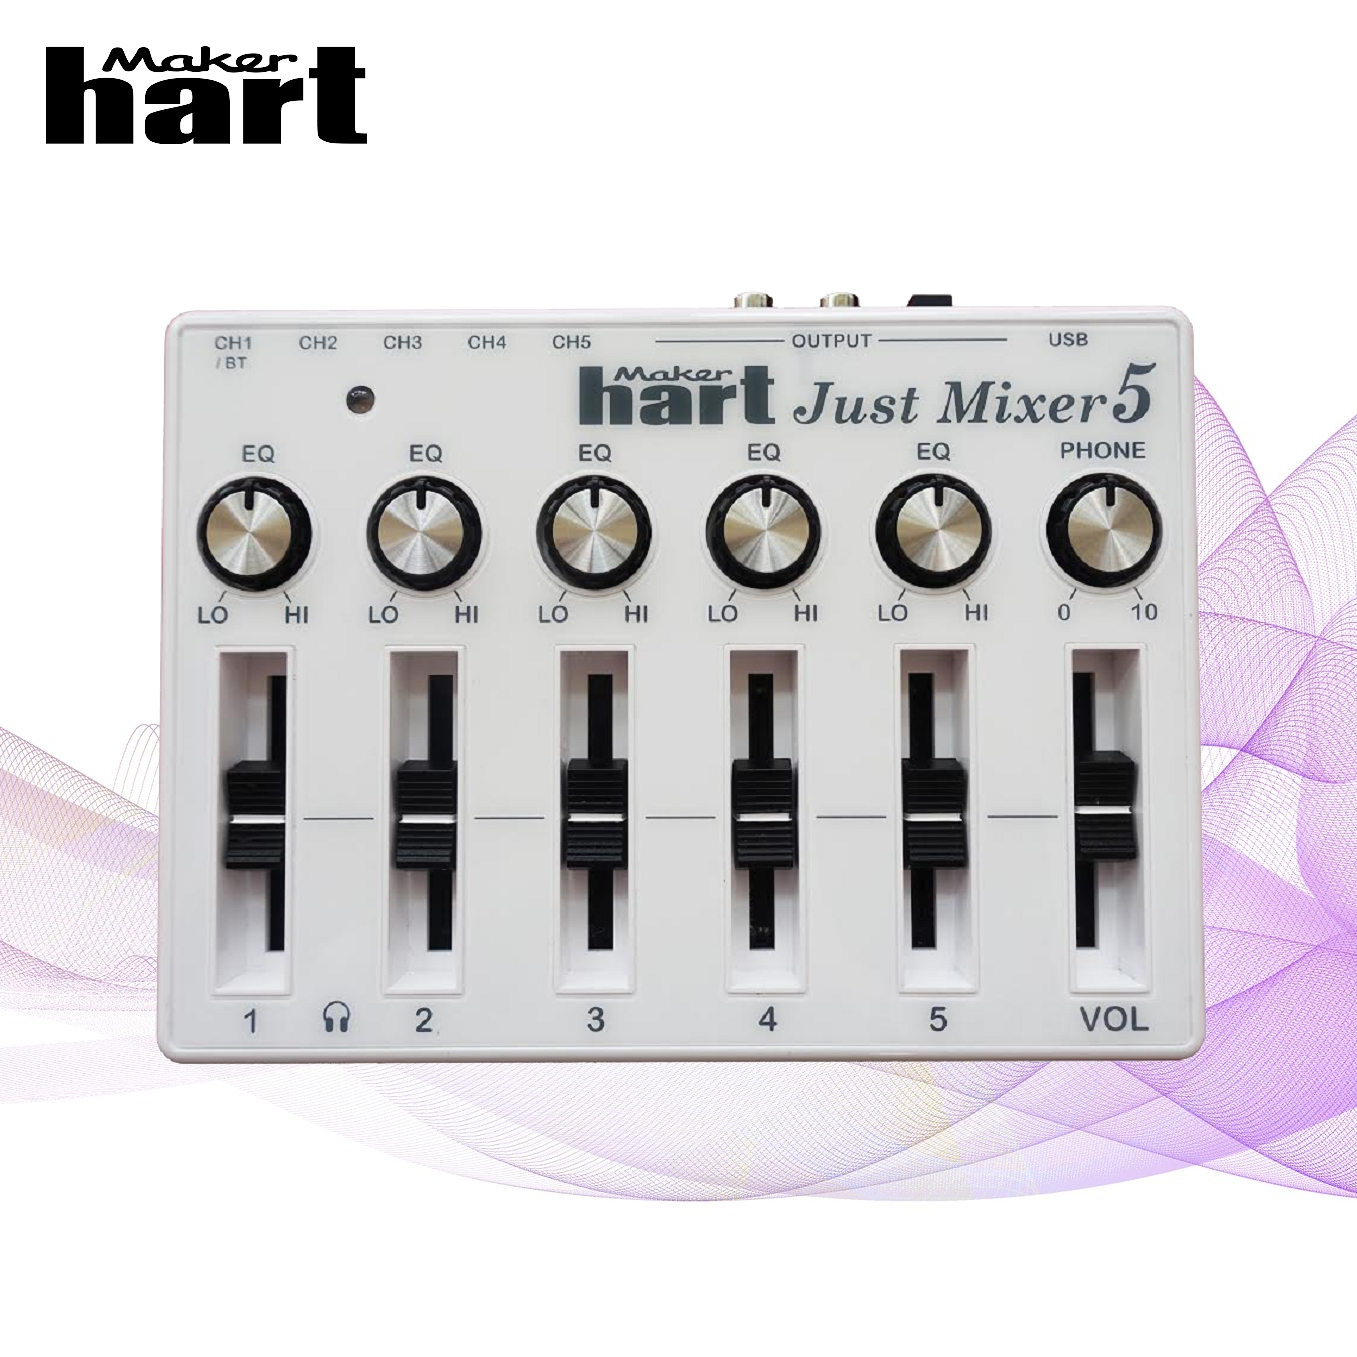 Maker hart 120V 3.5mm webcast USB audio mic mixer